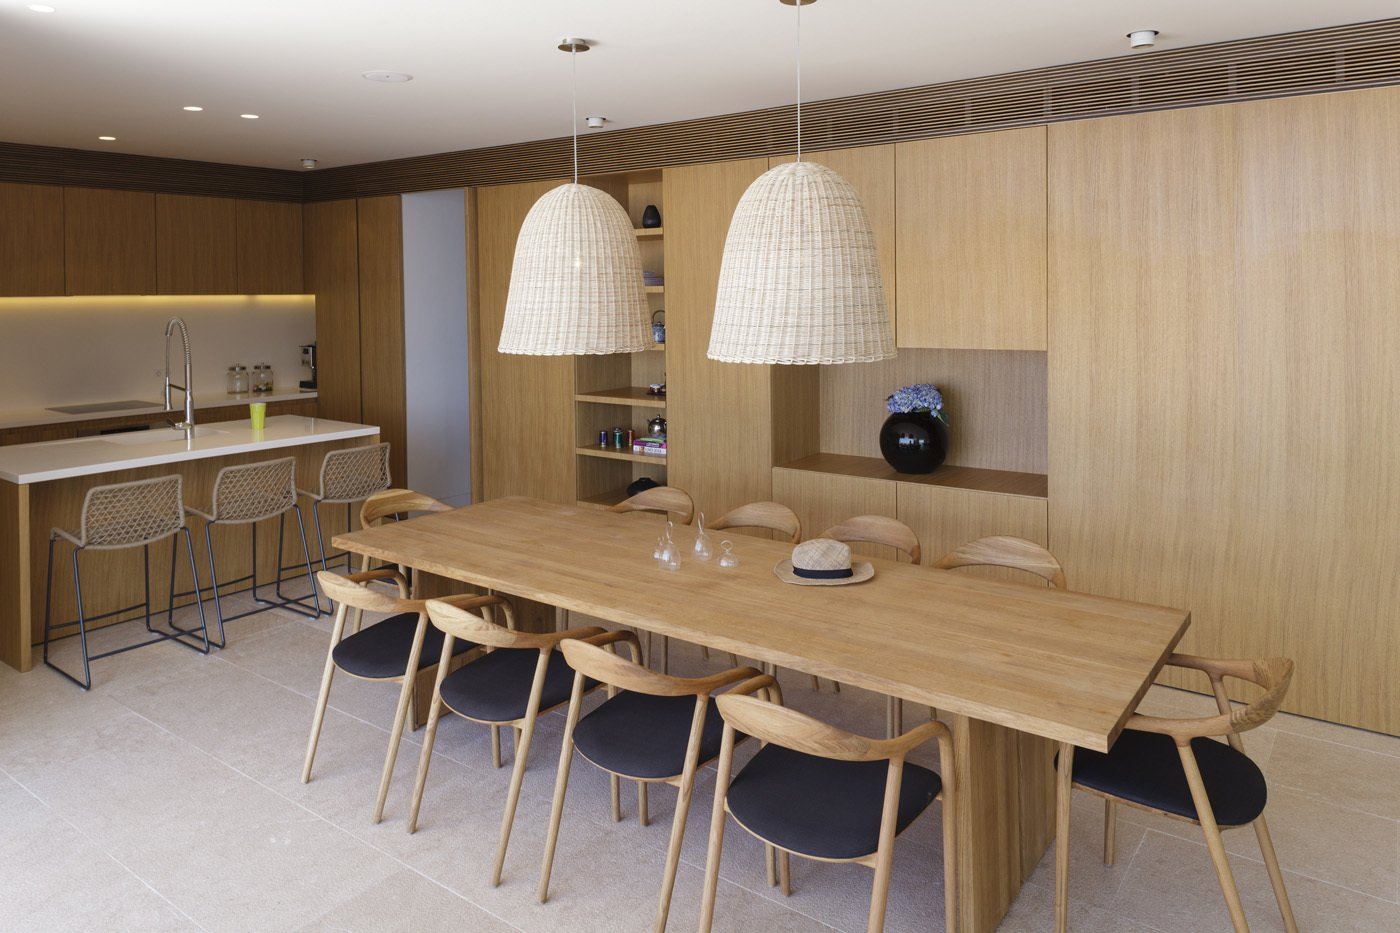 Kitchen and dining area  House V2 by 3LHD